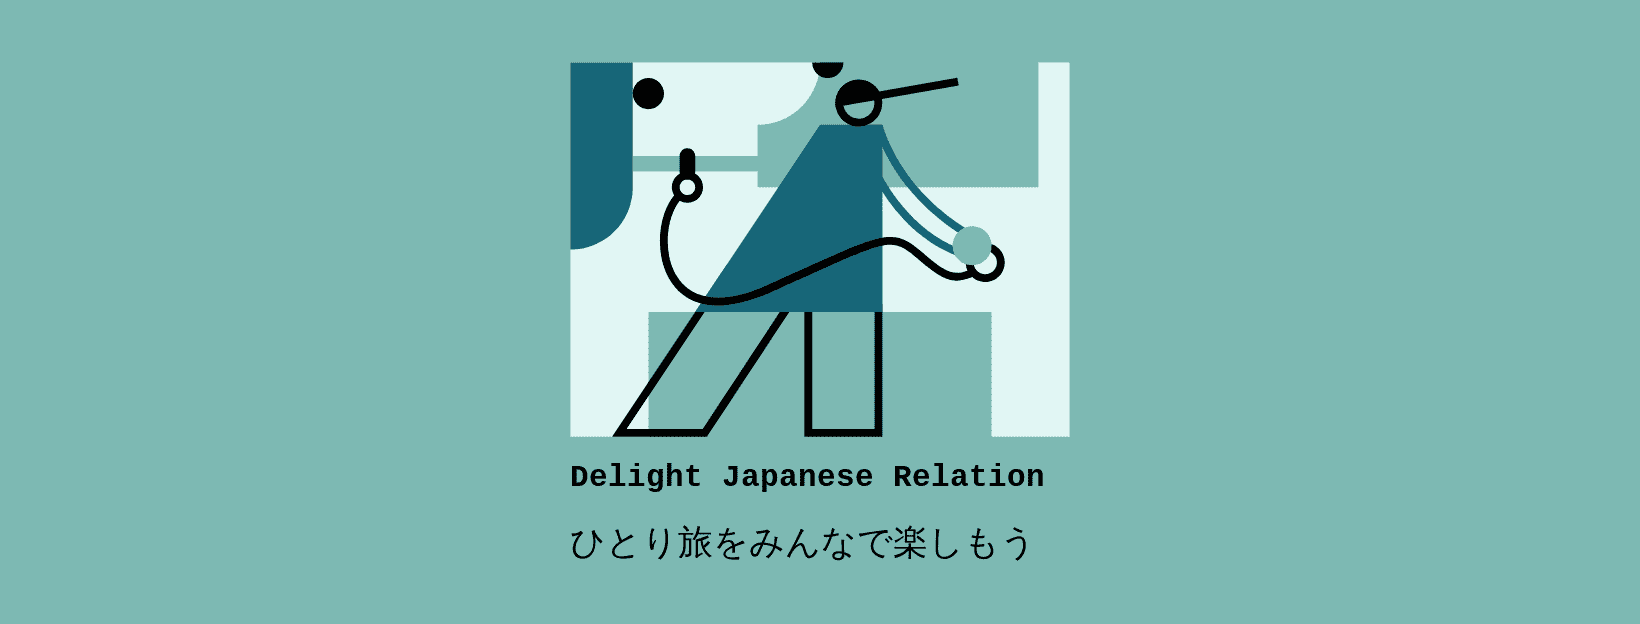 Delight Japanese Relation